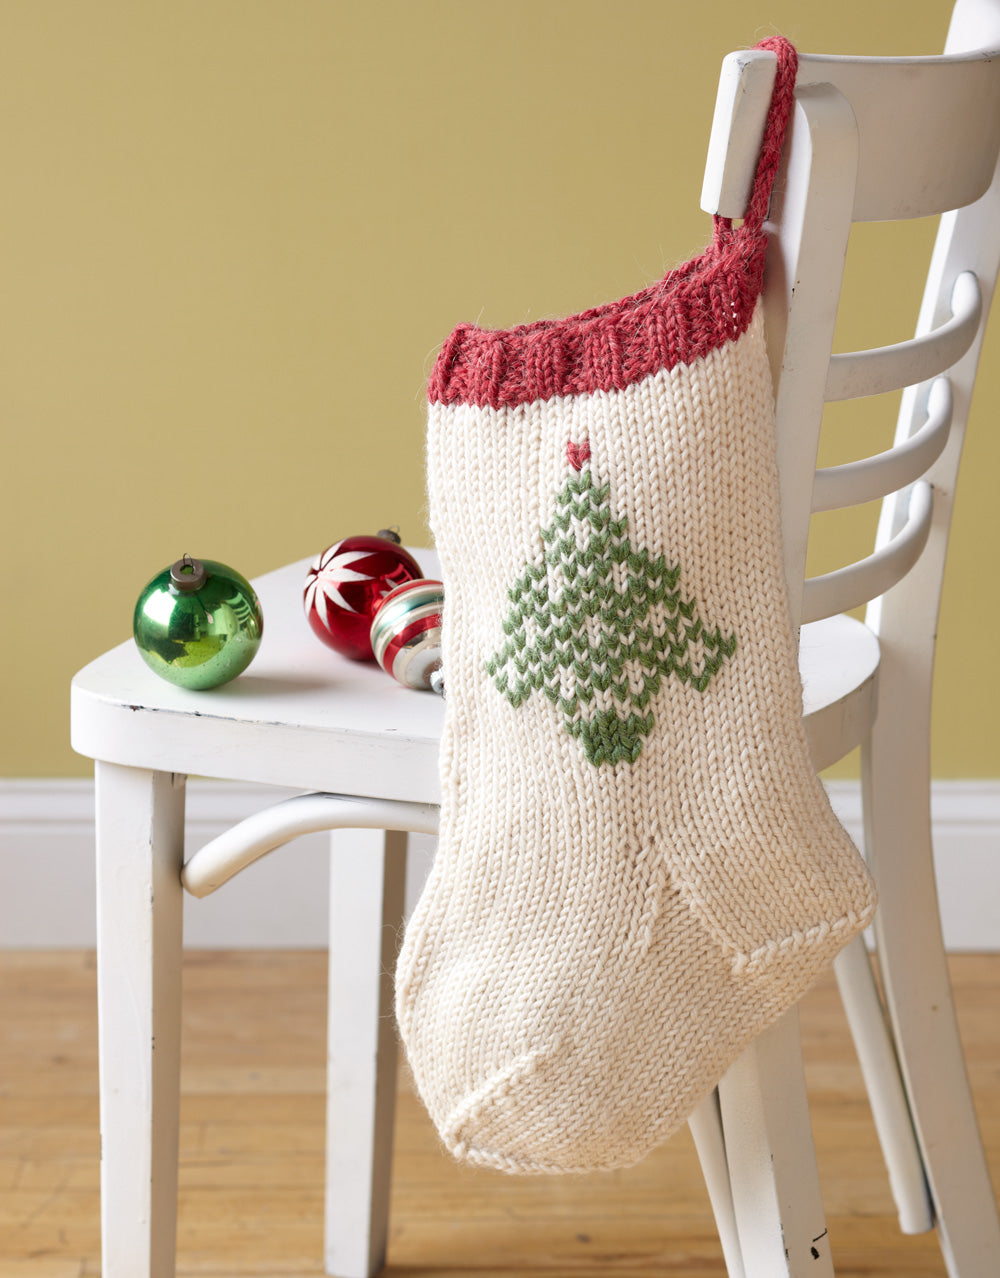 Chunky knit Christmas stocking pattern with colorful tree design using duplicate stitch.